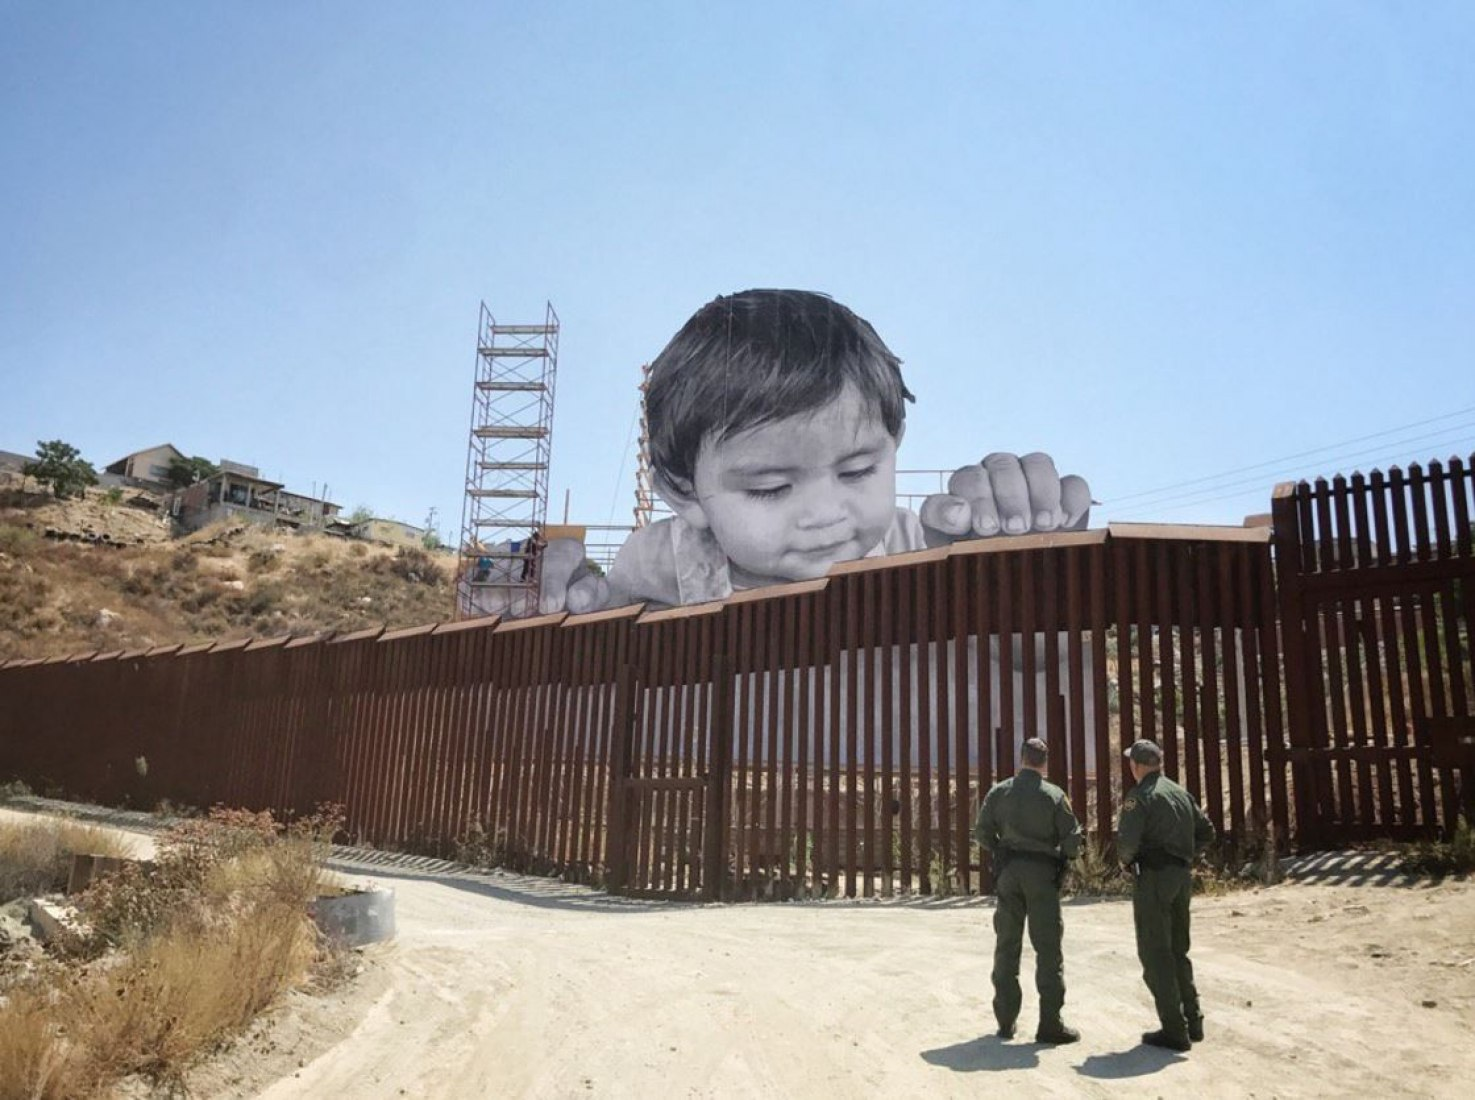 Work in progress on the Mexican side of the US/MEXICO border